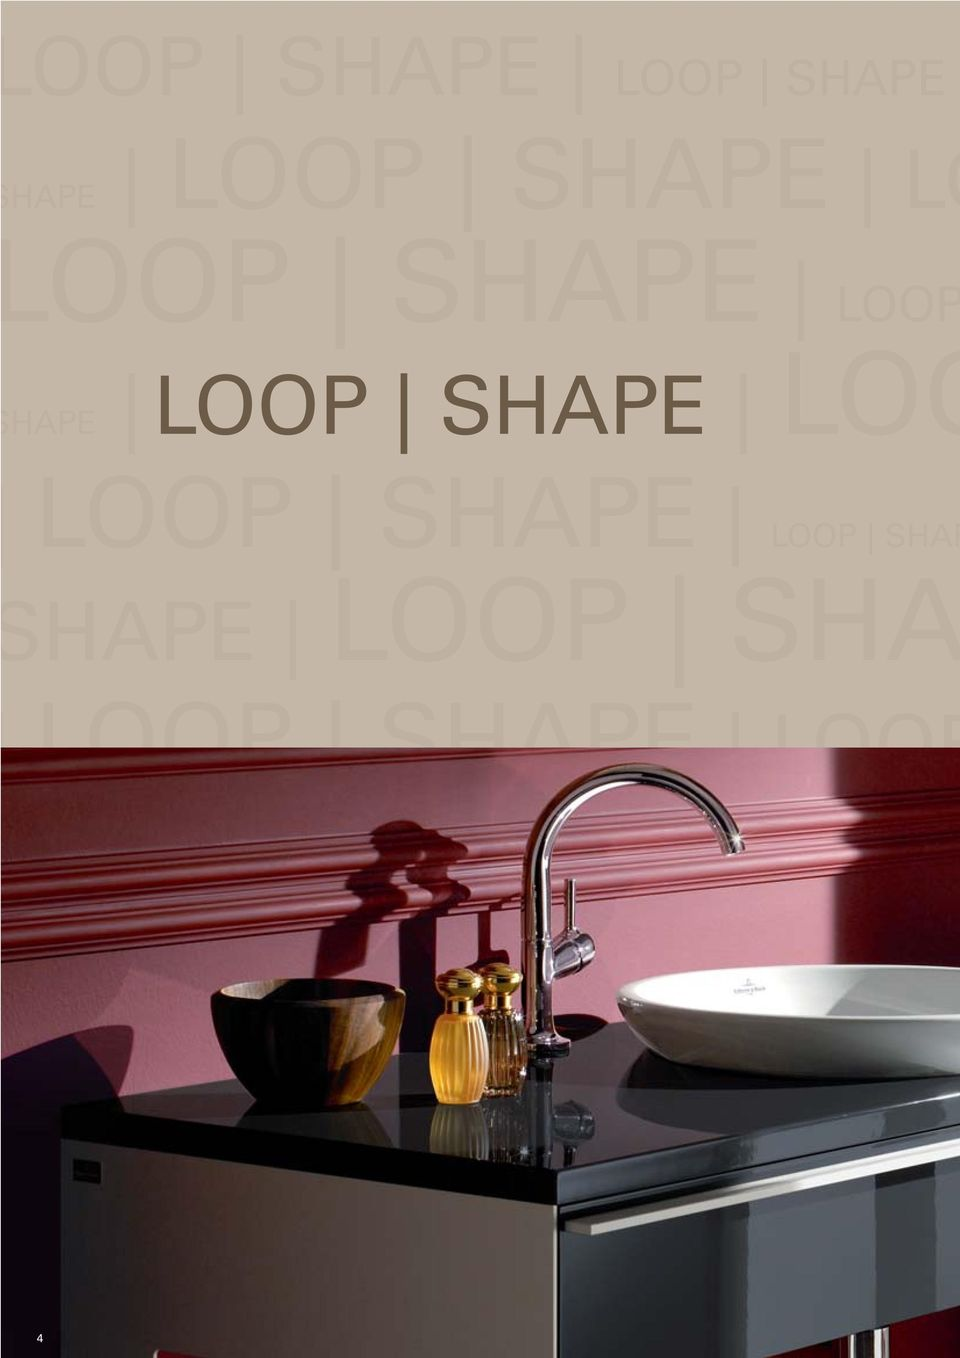 LOOP SHAPE LOOP SHAPE LOOP SHAPE LOO OOP SHAPE LOOP HAPE